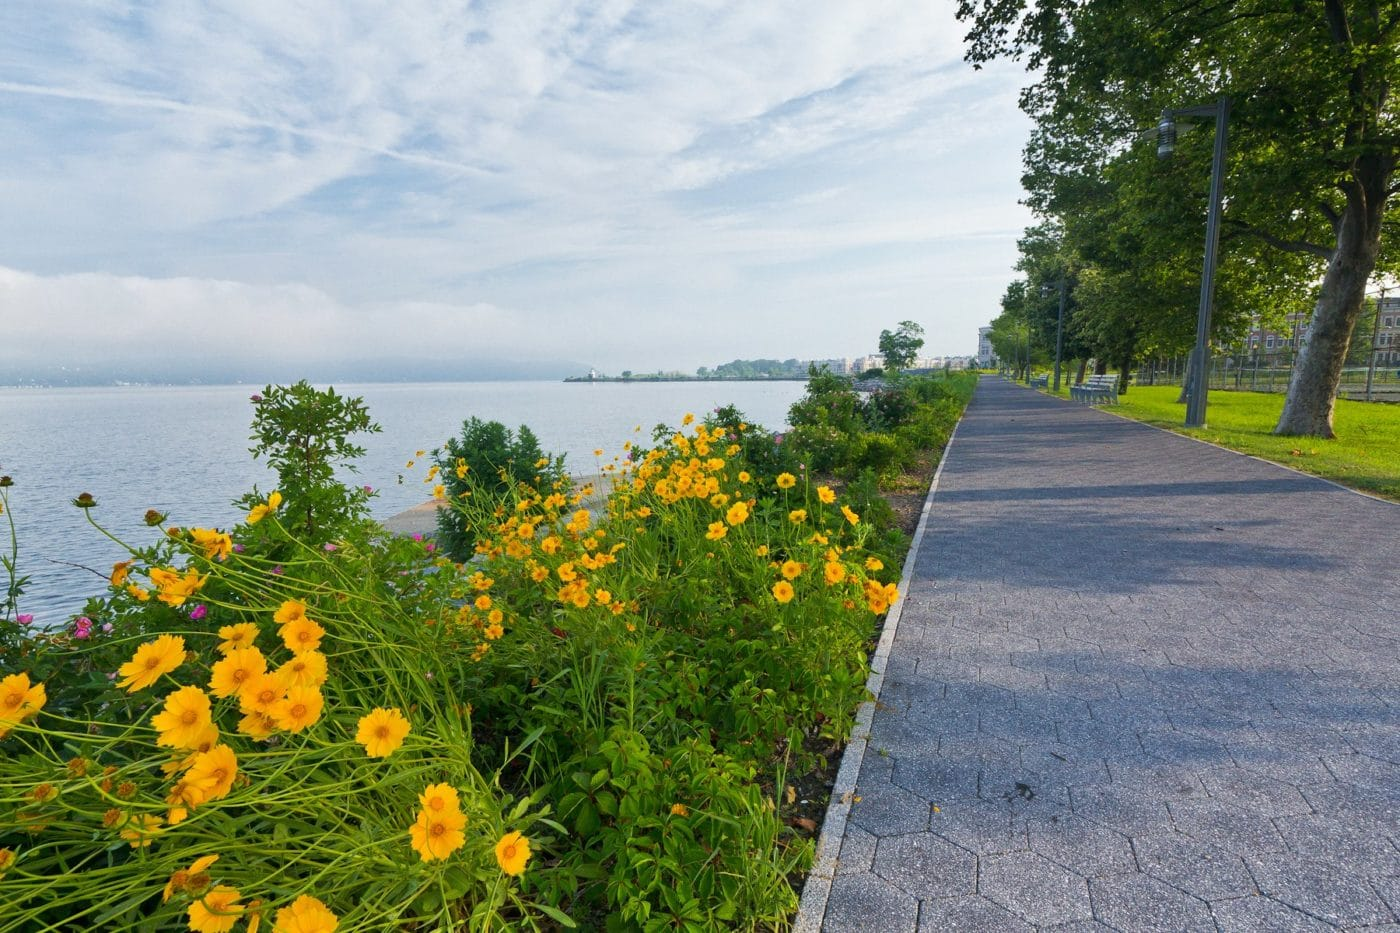 Scenic Hudson Riverwalk Park at Tarrytown